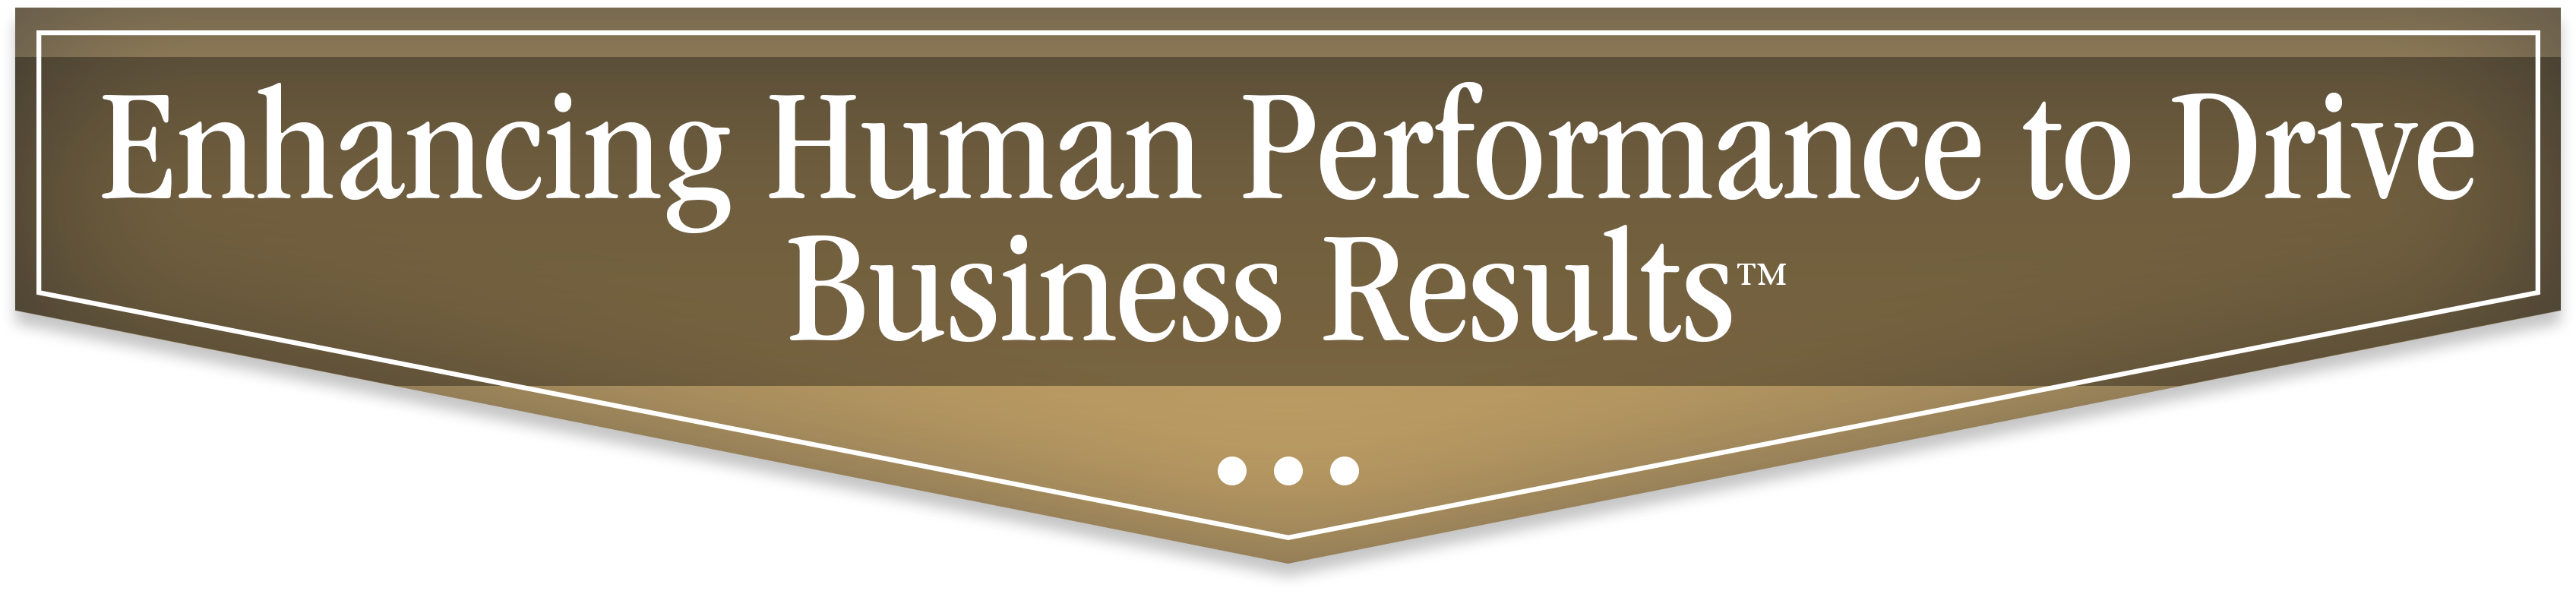 Enhancing Human Performance to Drive Business Results with Strategic Enhancement Group - SEG